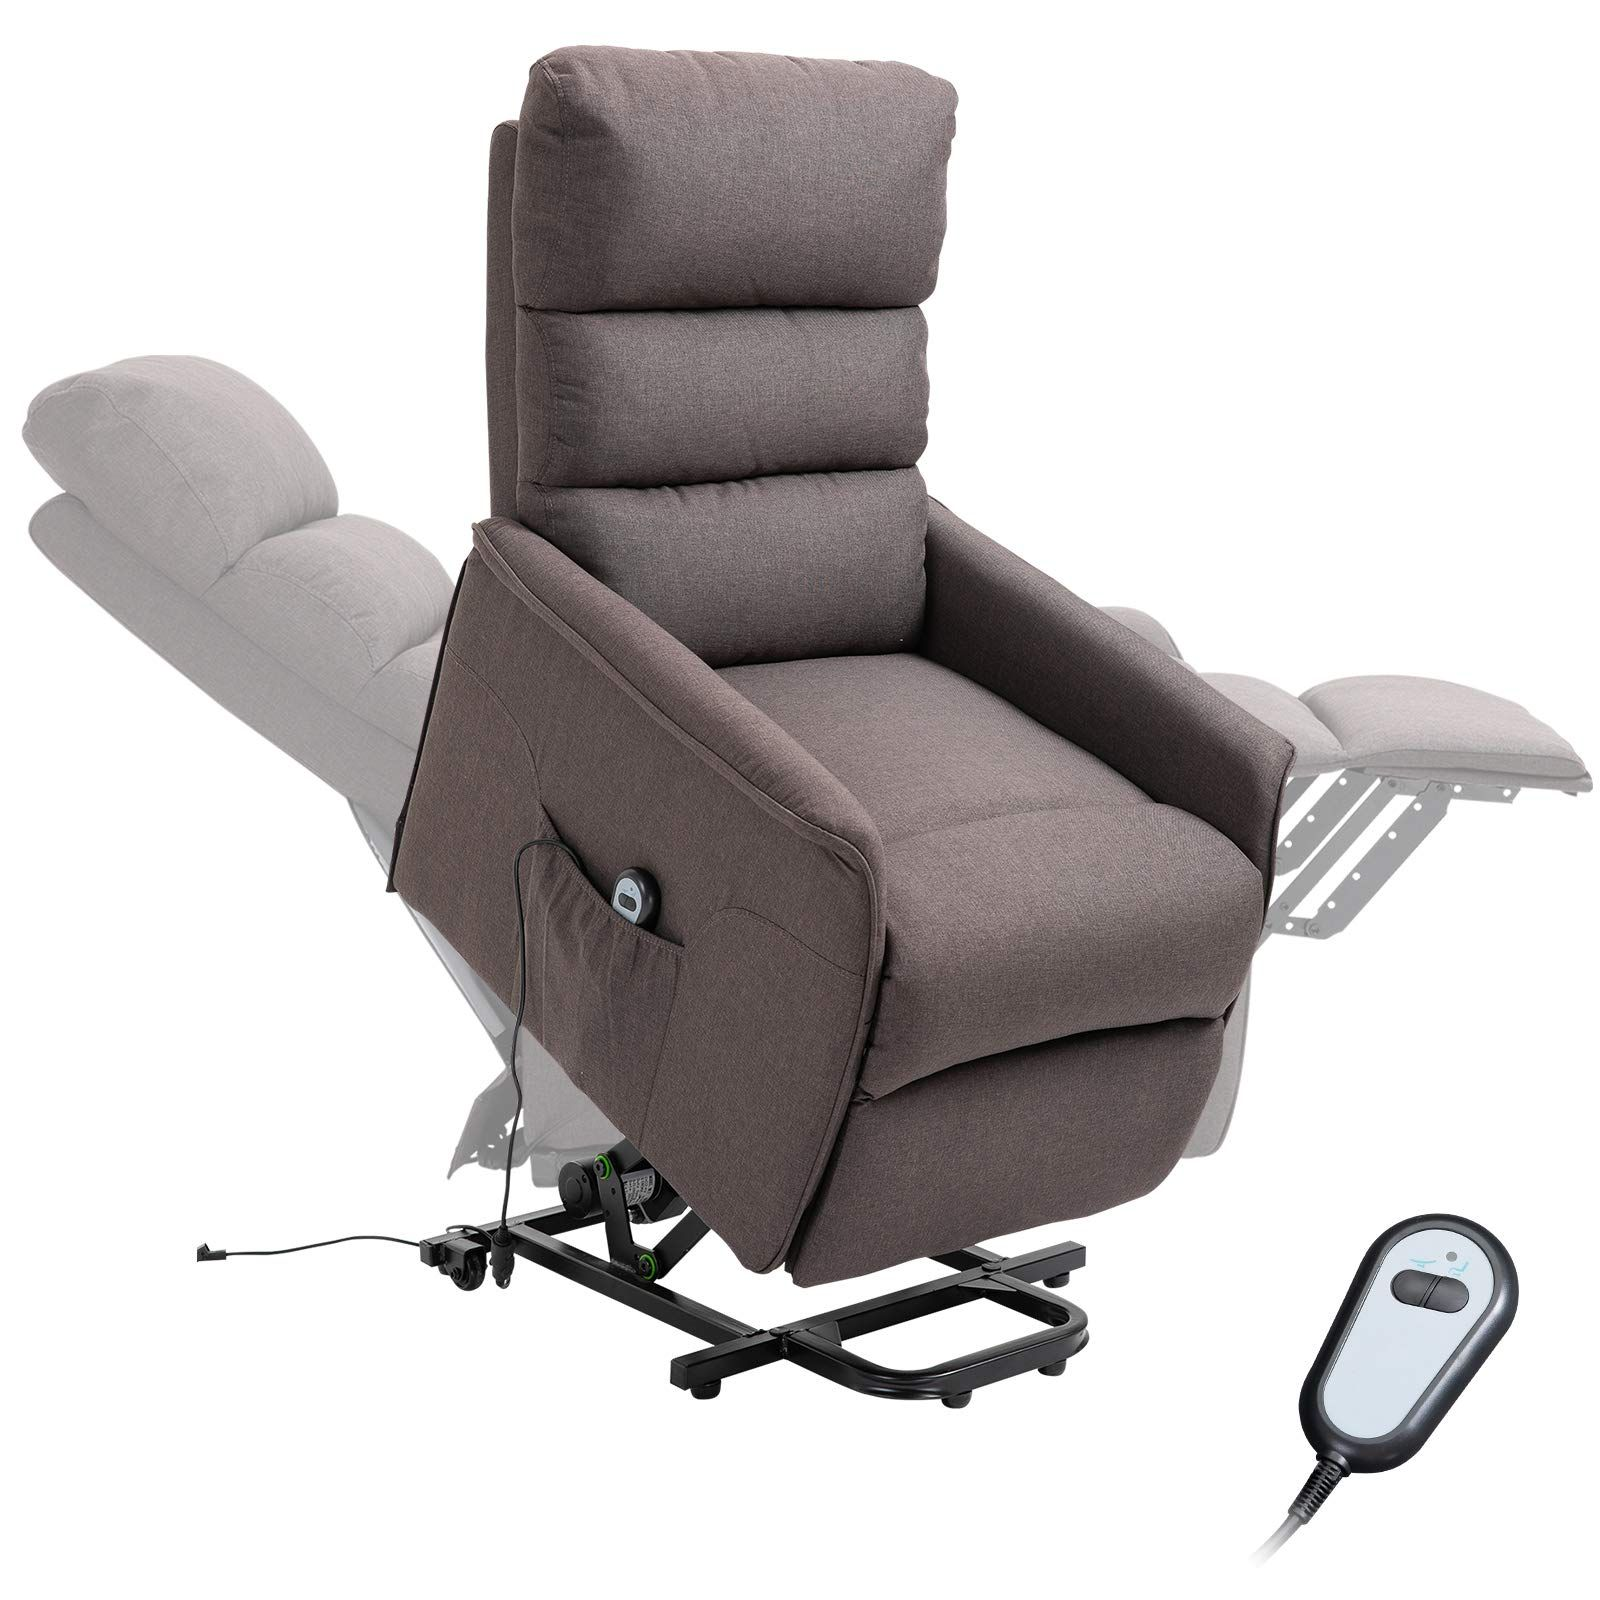 Homcom Power Lift Assist Recliner Chair For Elderly With Wheels